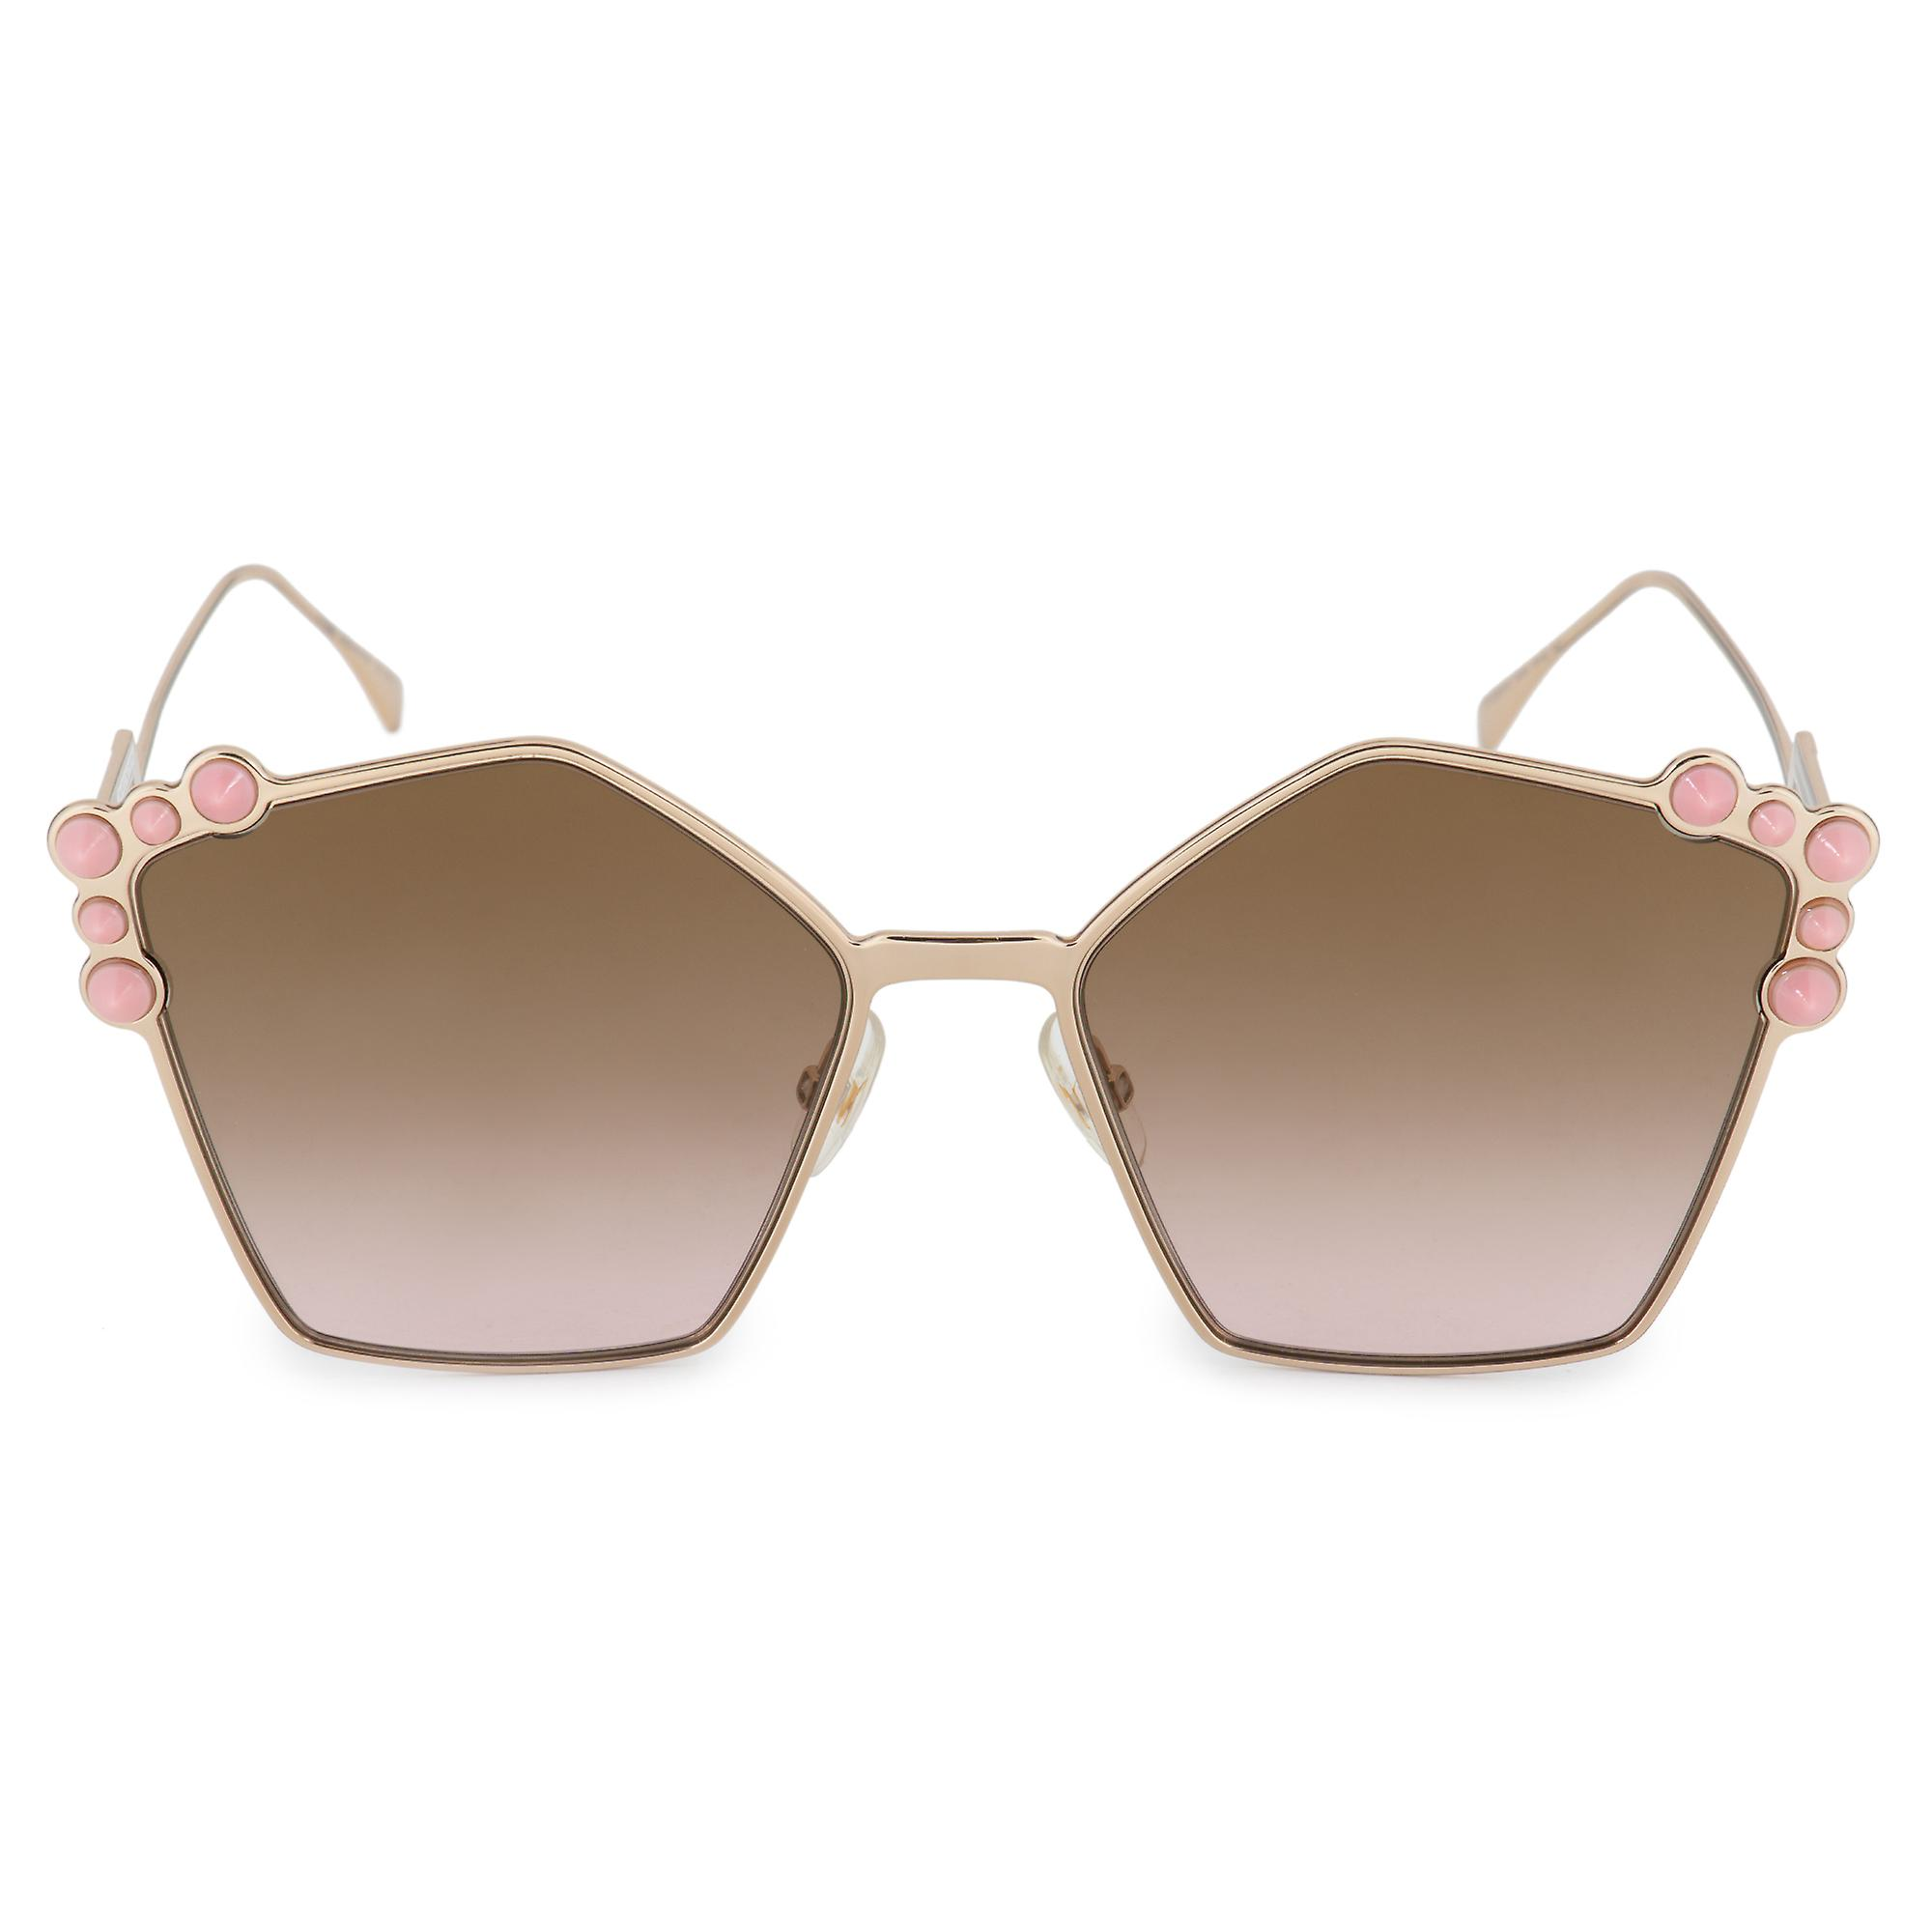 Fendi Can Eye FF 0261 S 000 53 57 Geometric Sunglasses